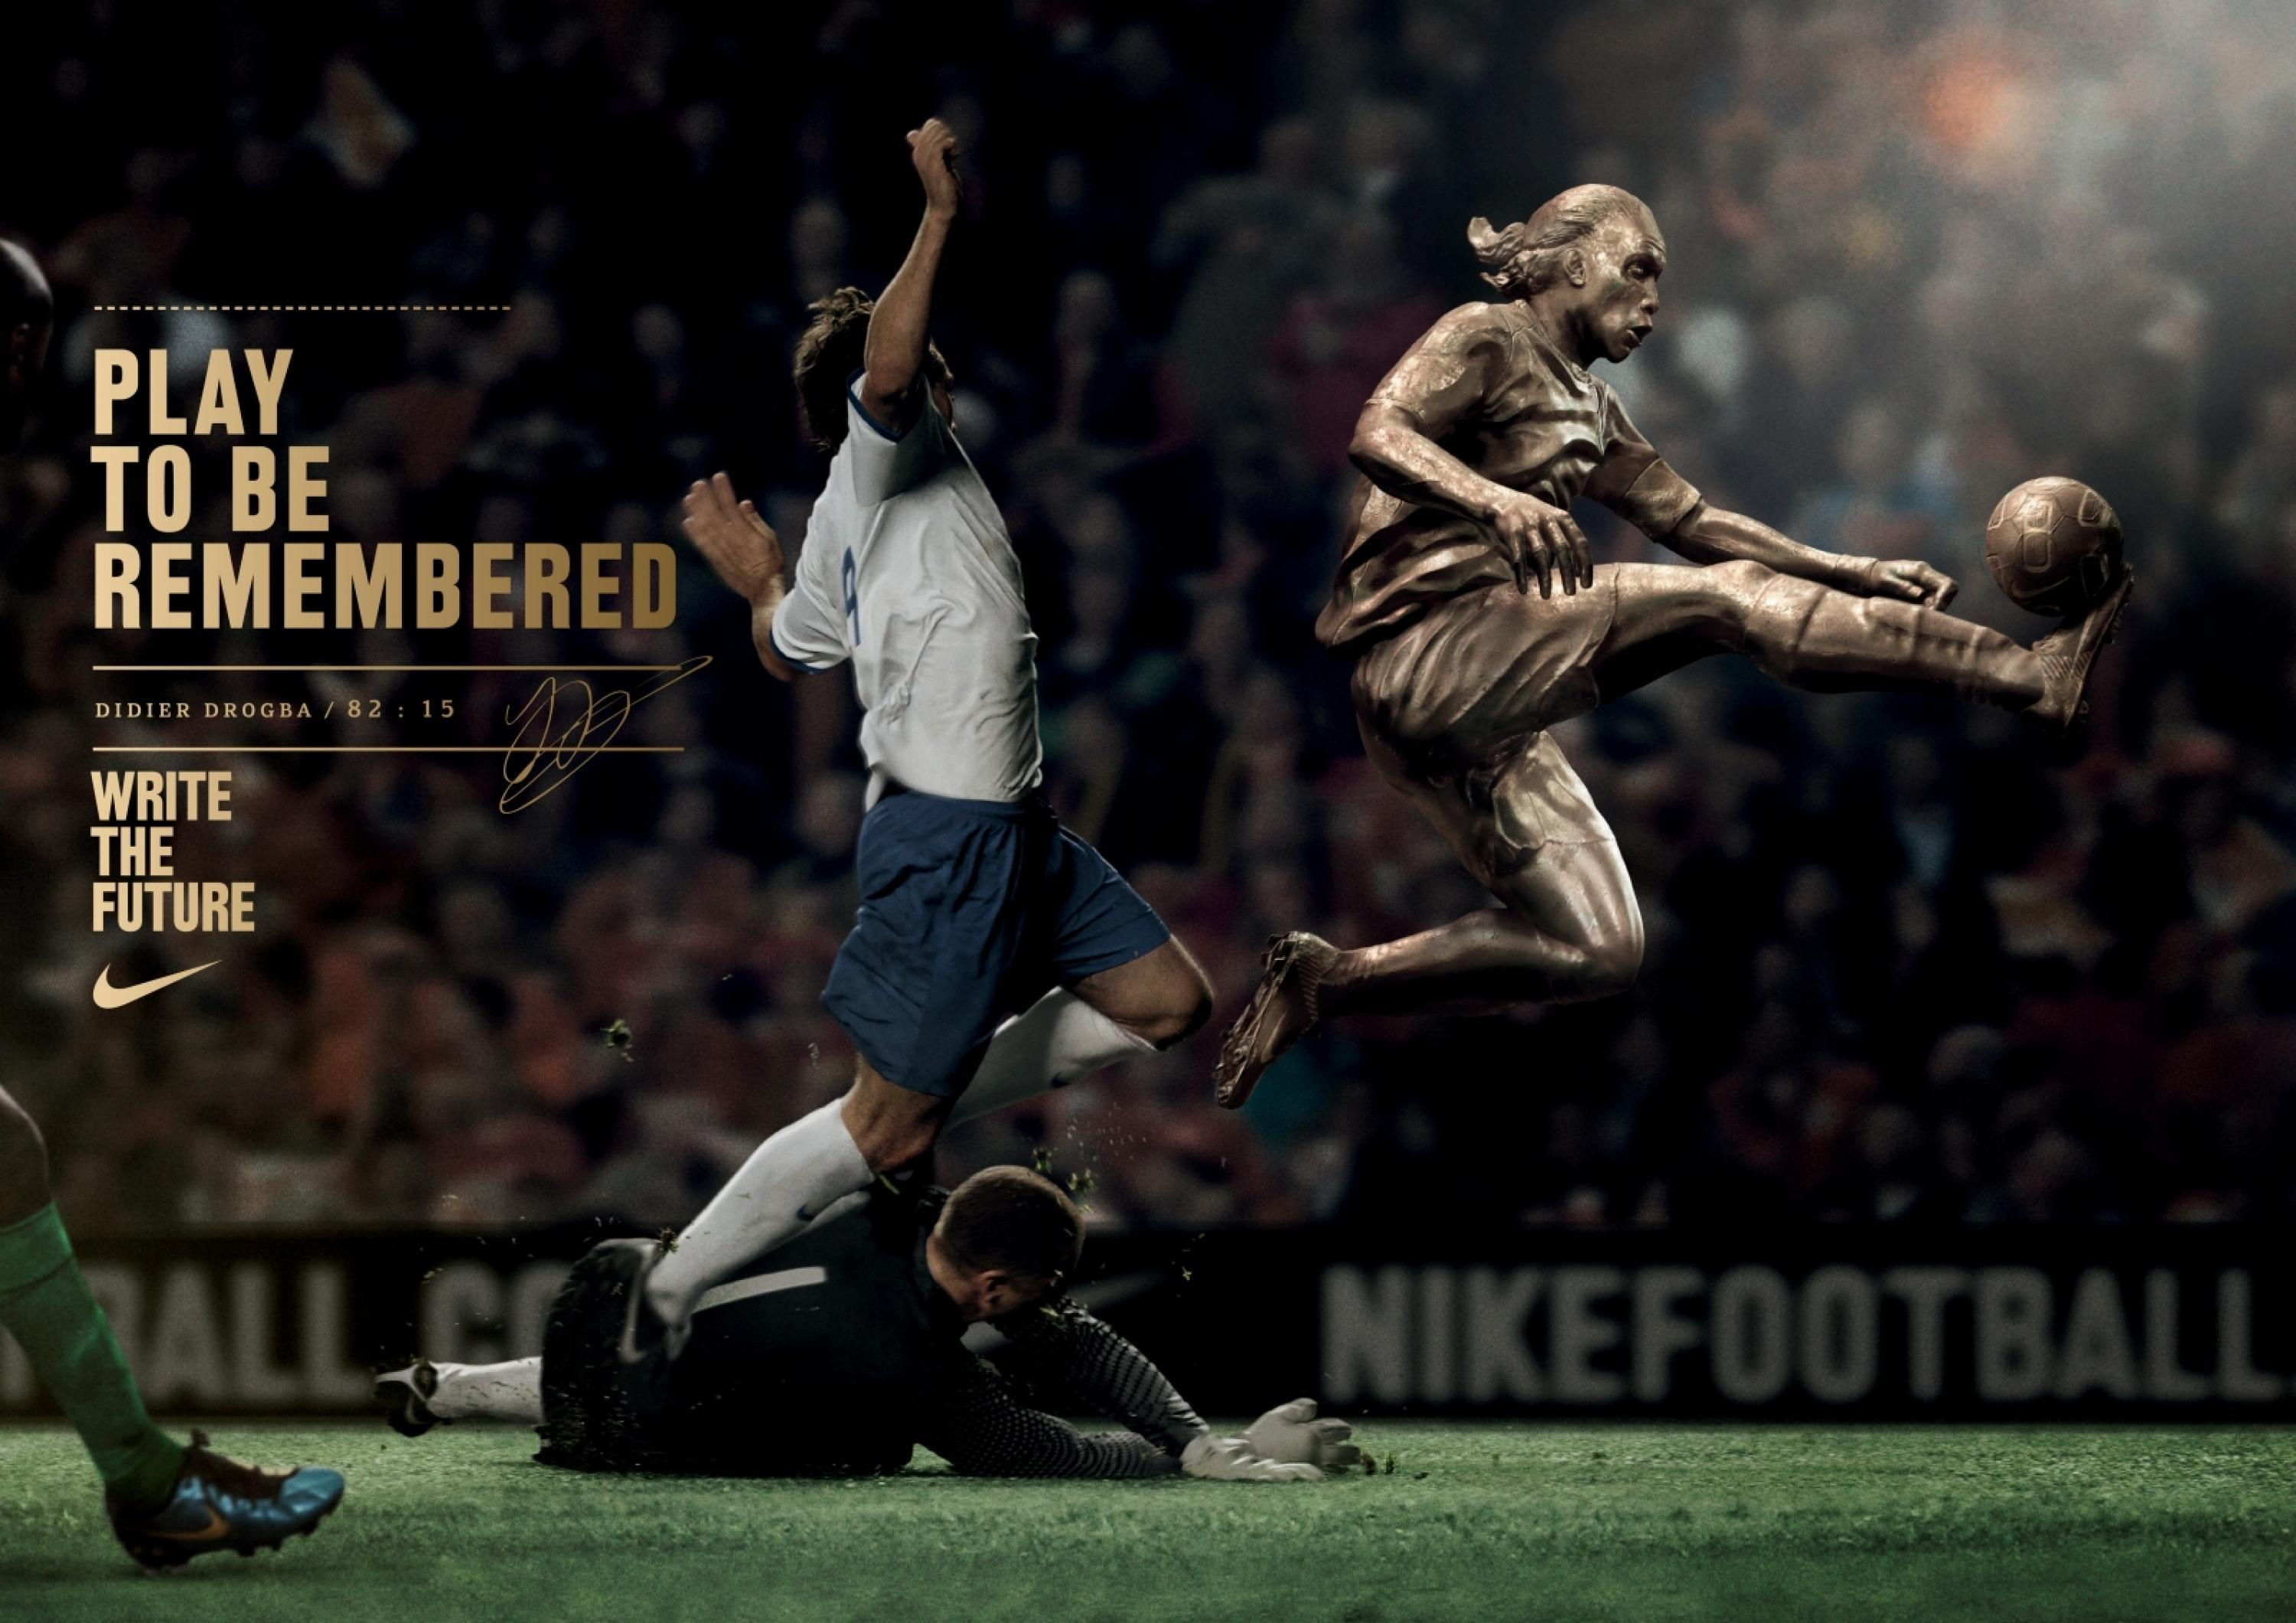 c0275ff7f11c27 Adeevee | Only selected creativity - Nike Football: Drogba, Rooney ...